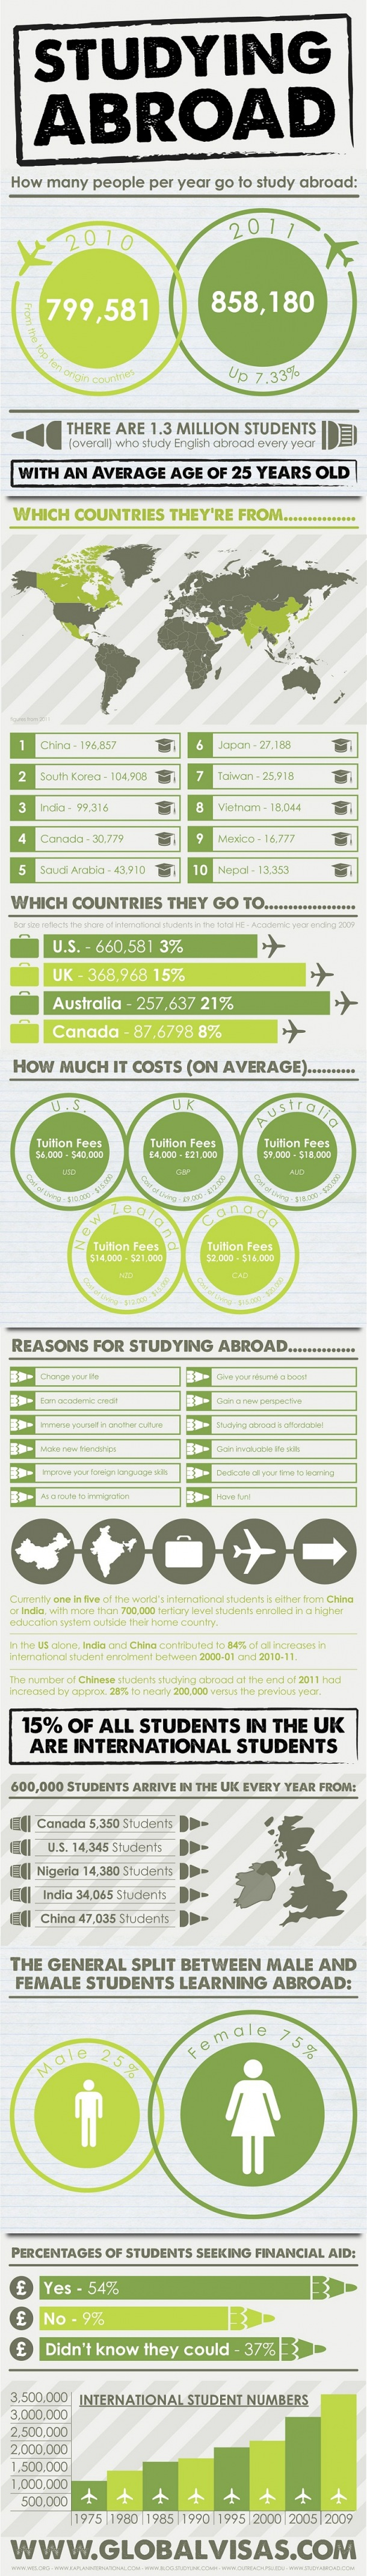 Studying Abroad Infographic Study Abroad International Students Study Abroad Travel